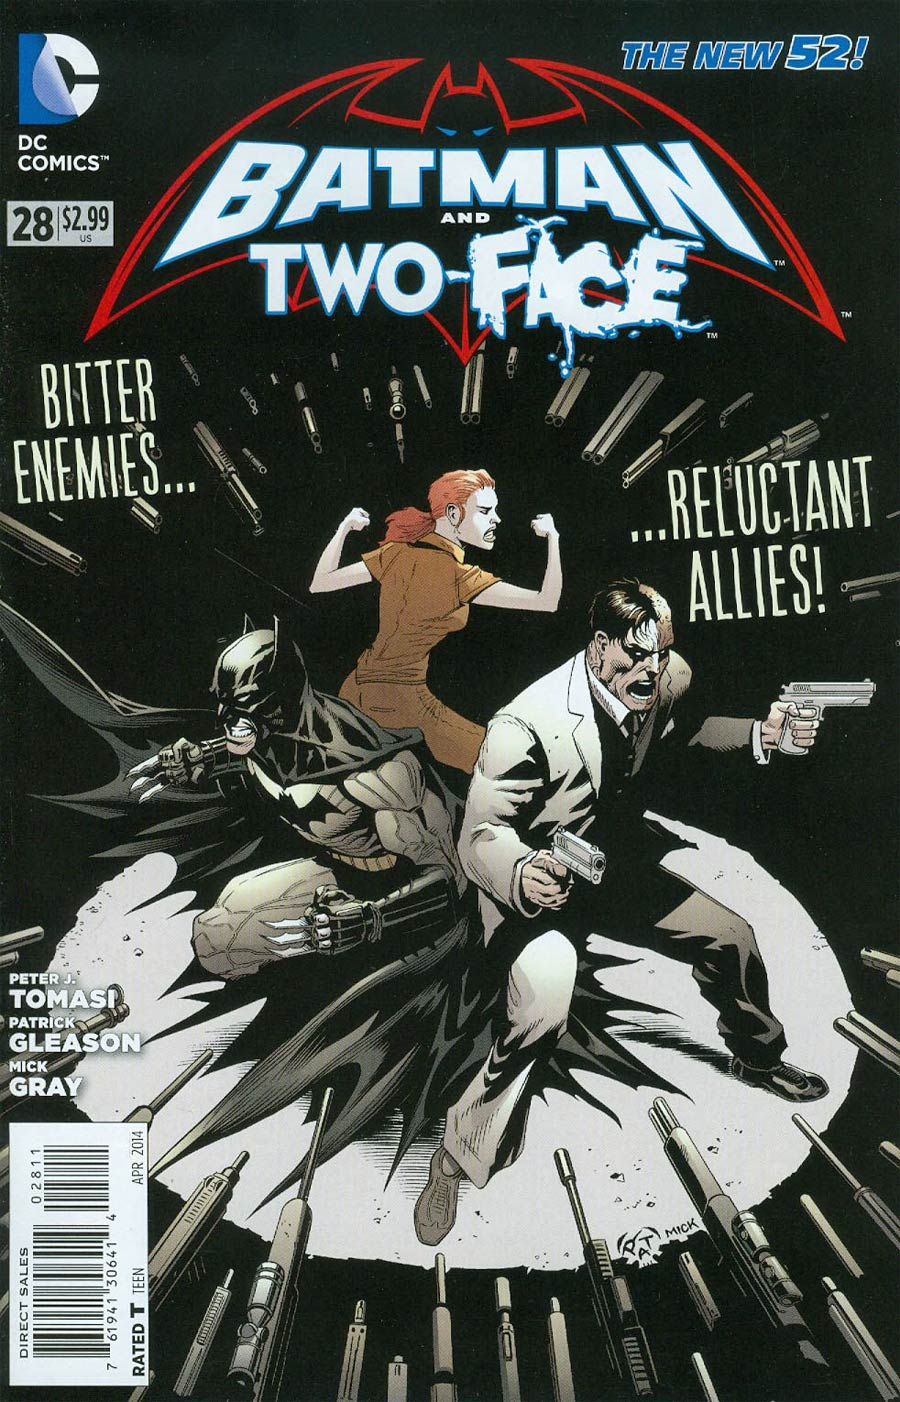 Batman And Two-Face #28 Cover A Regular Patrick Gleason Cover